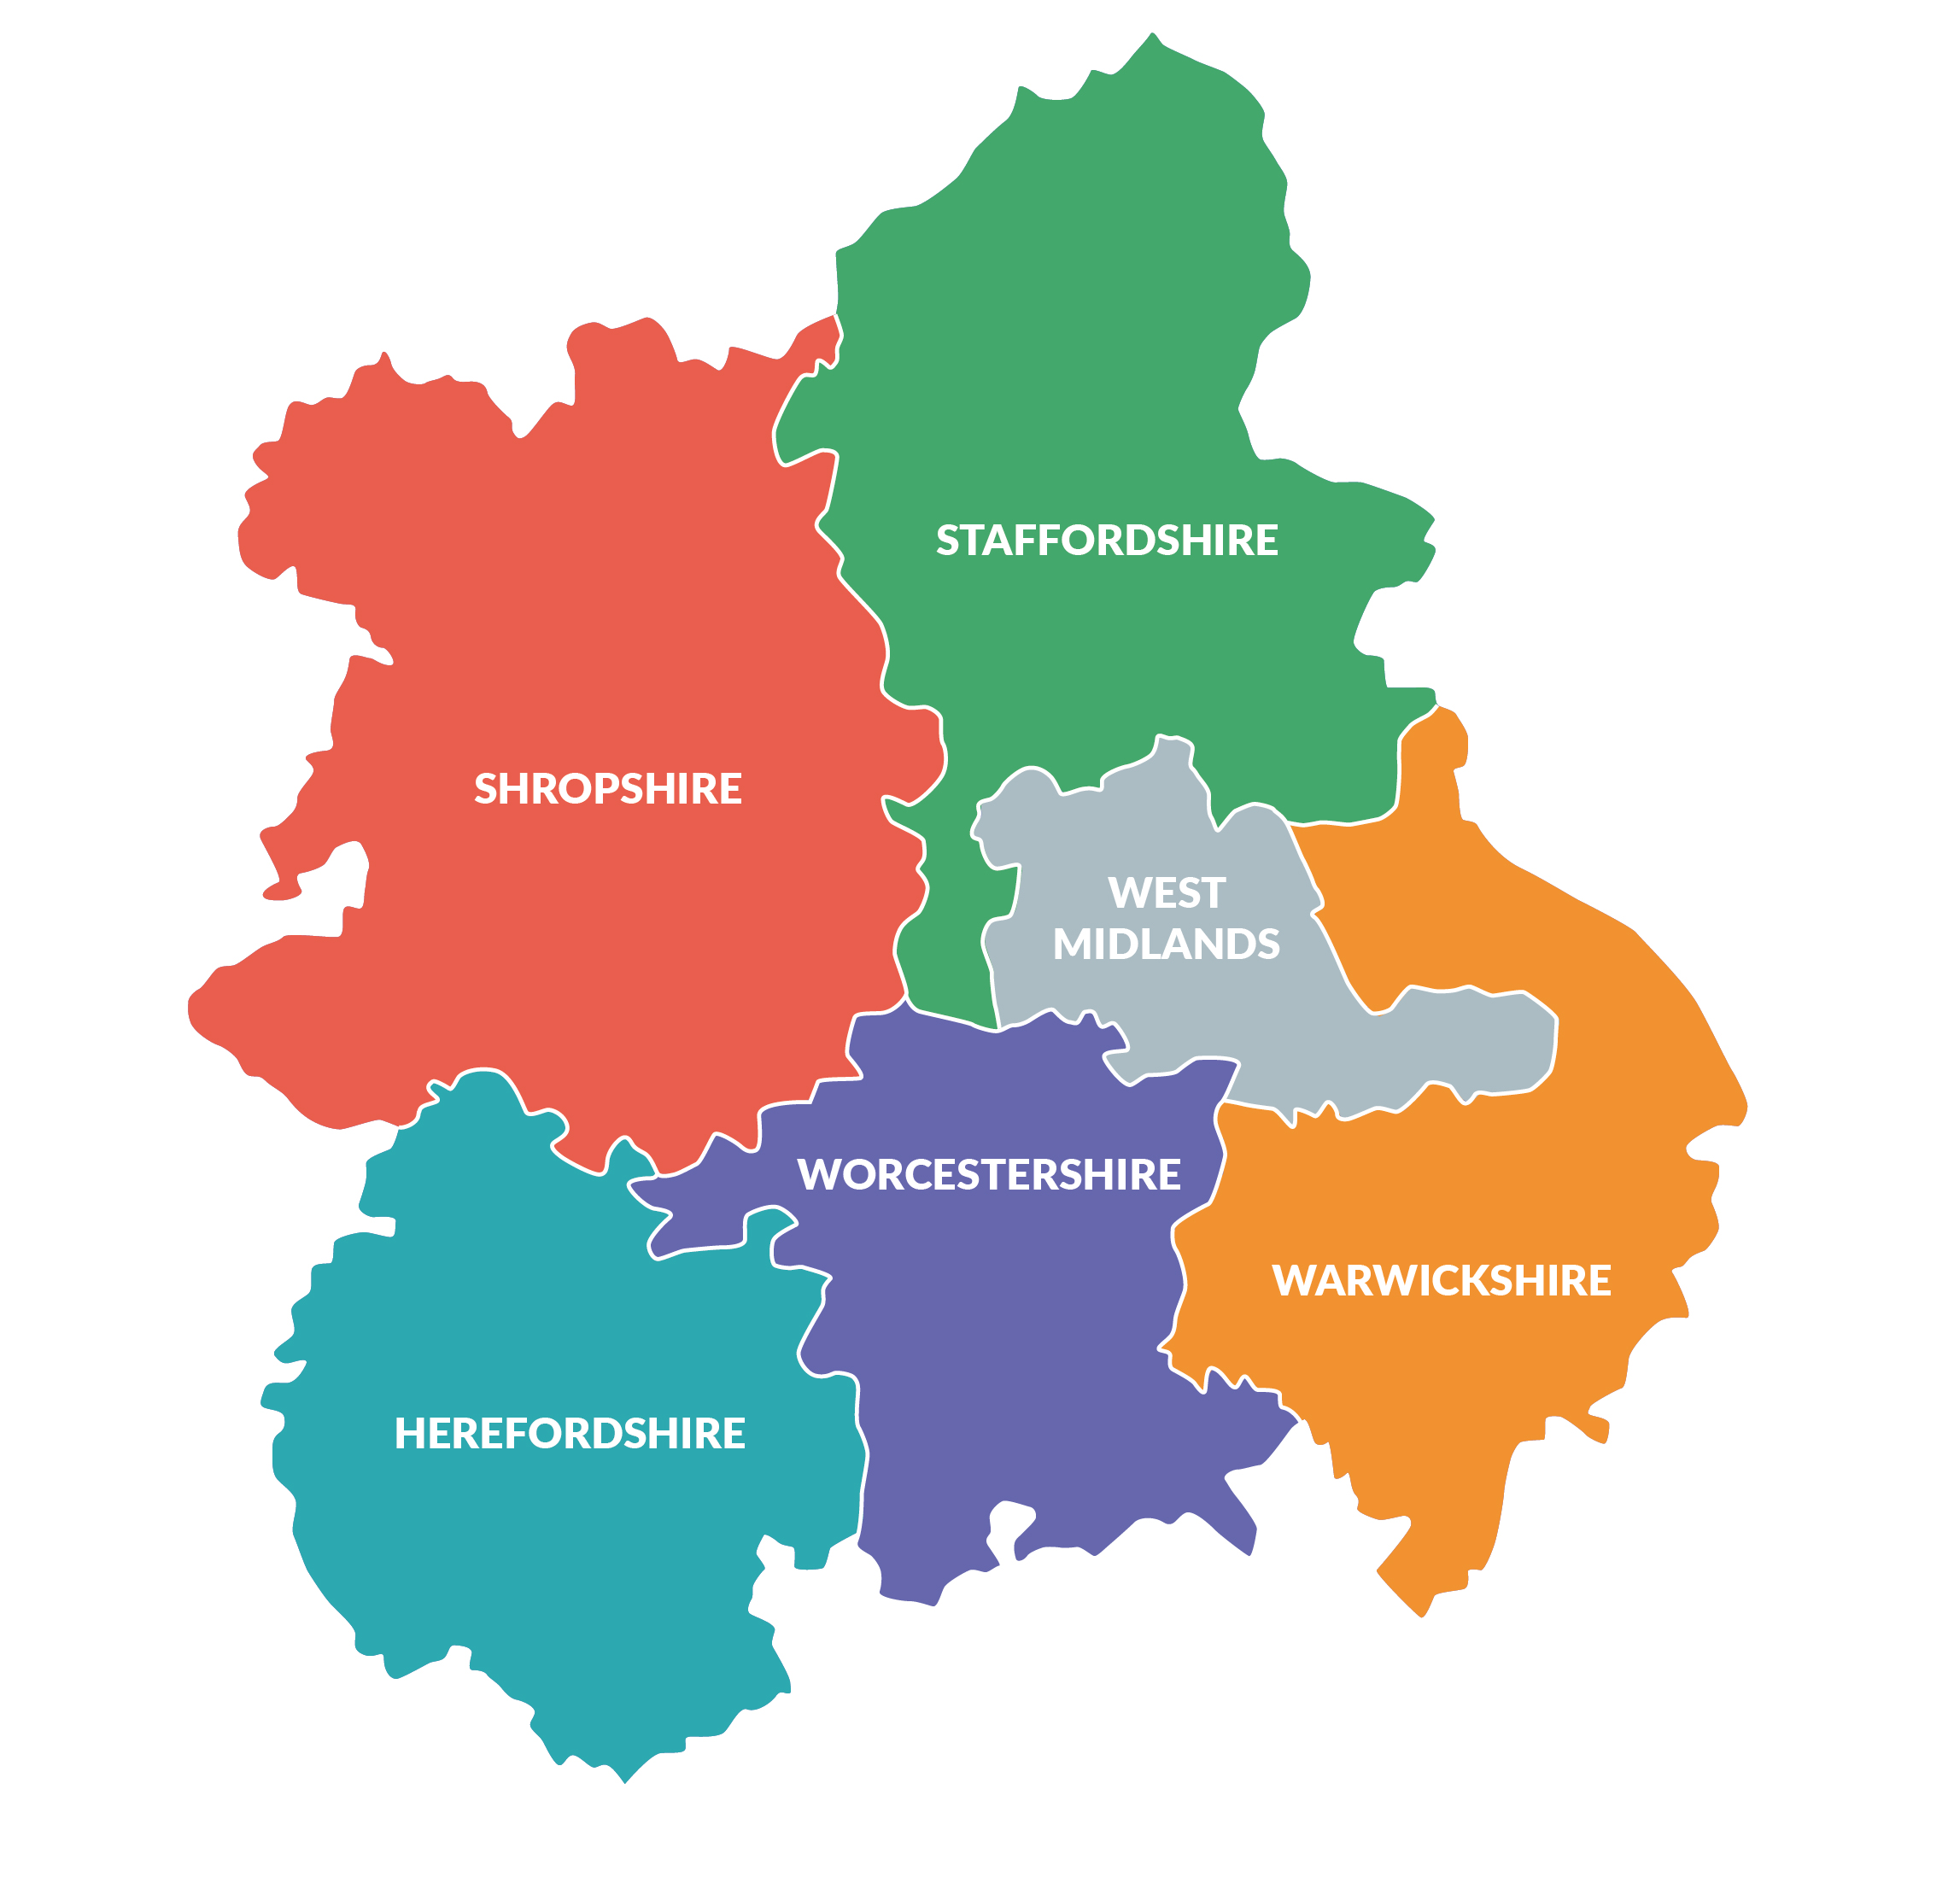 Map of counties covered by the CRN West Midlands